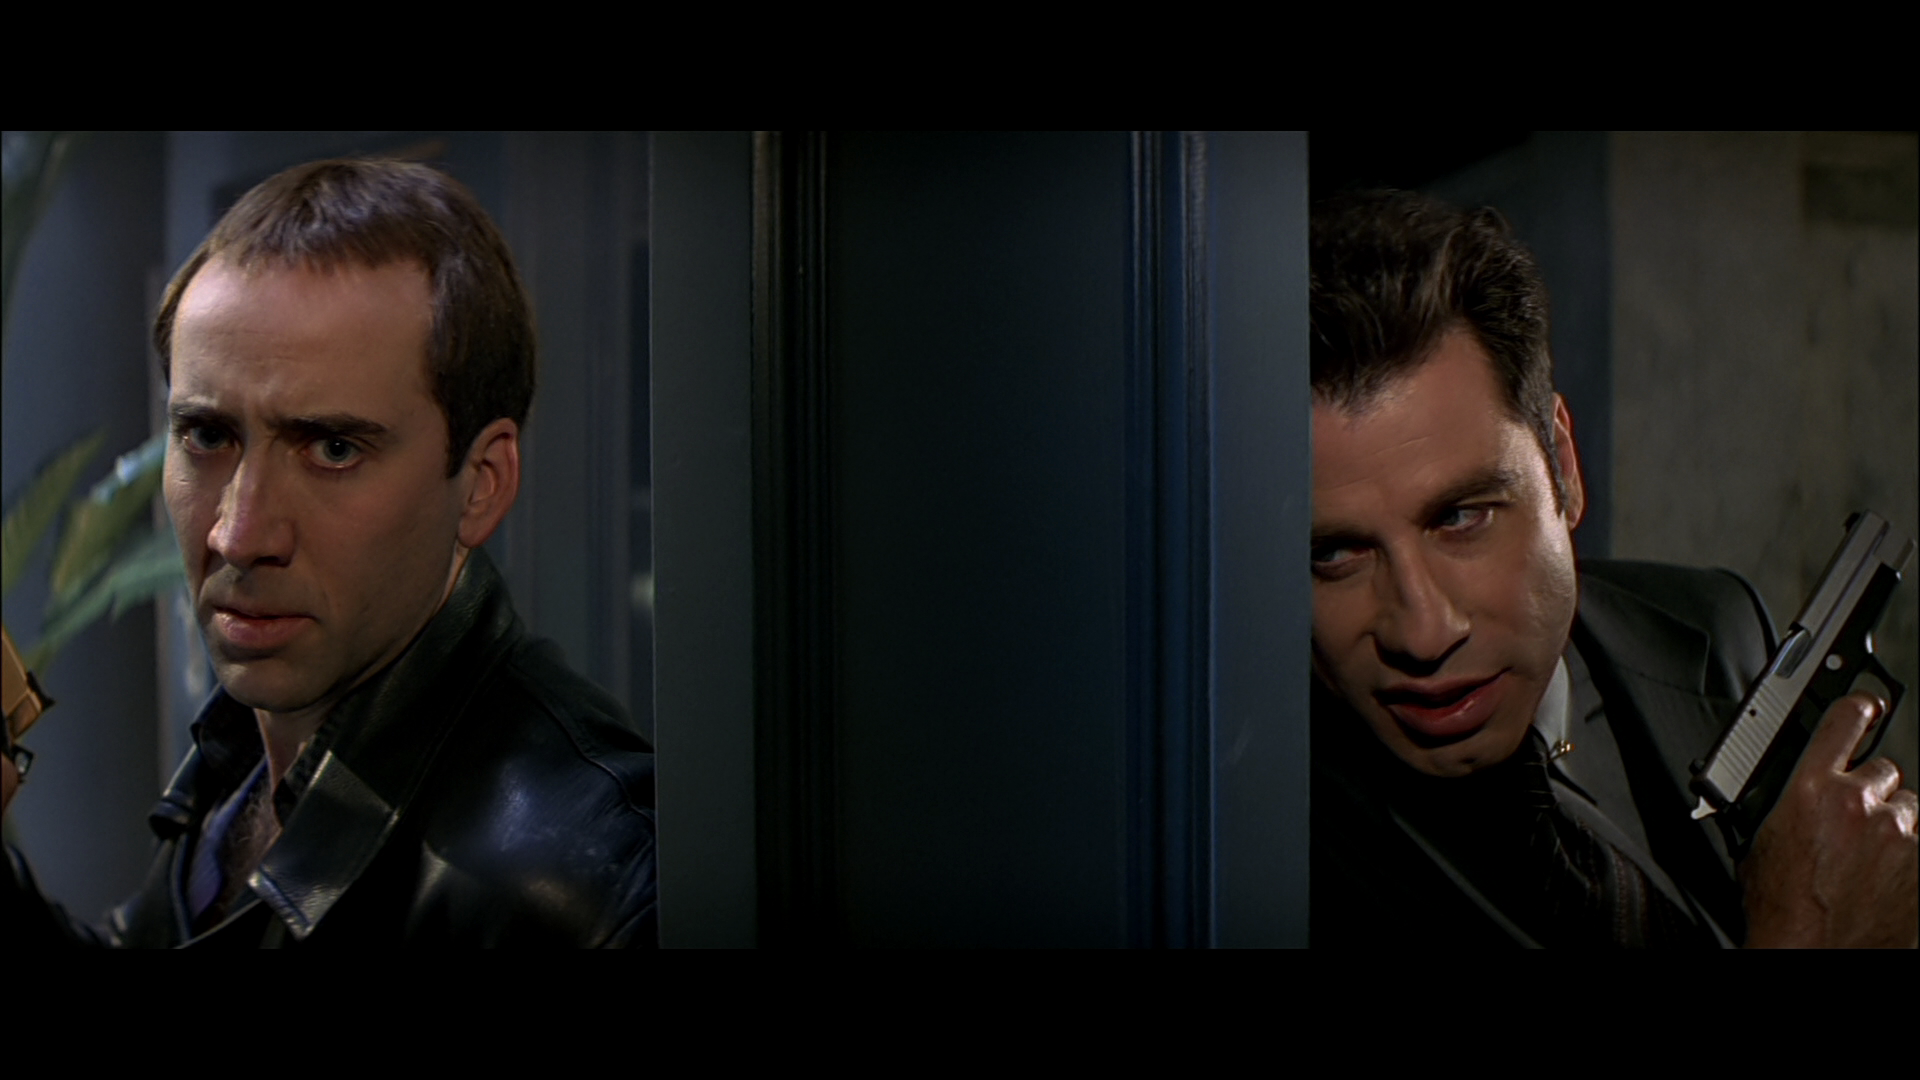 A scene from Face/Off.